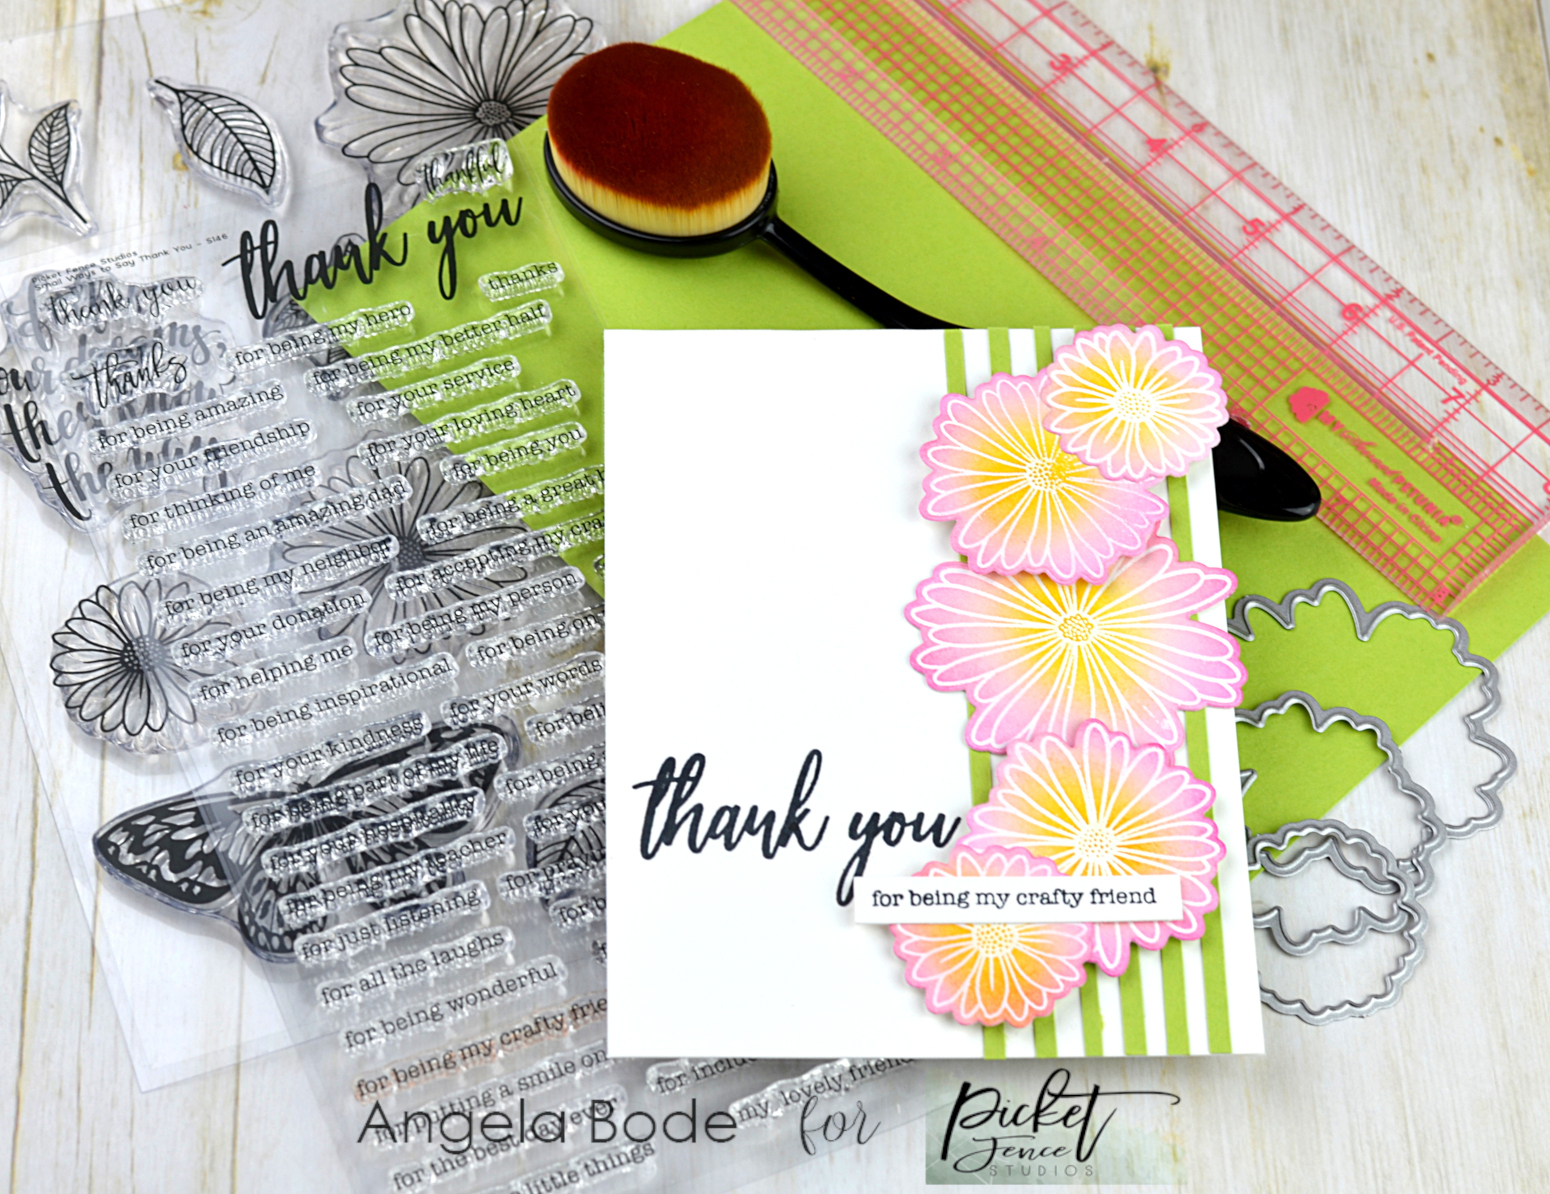 Picket Fence Studios Small Ways To Say Thank You에 대한 이미지 검색결과